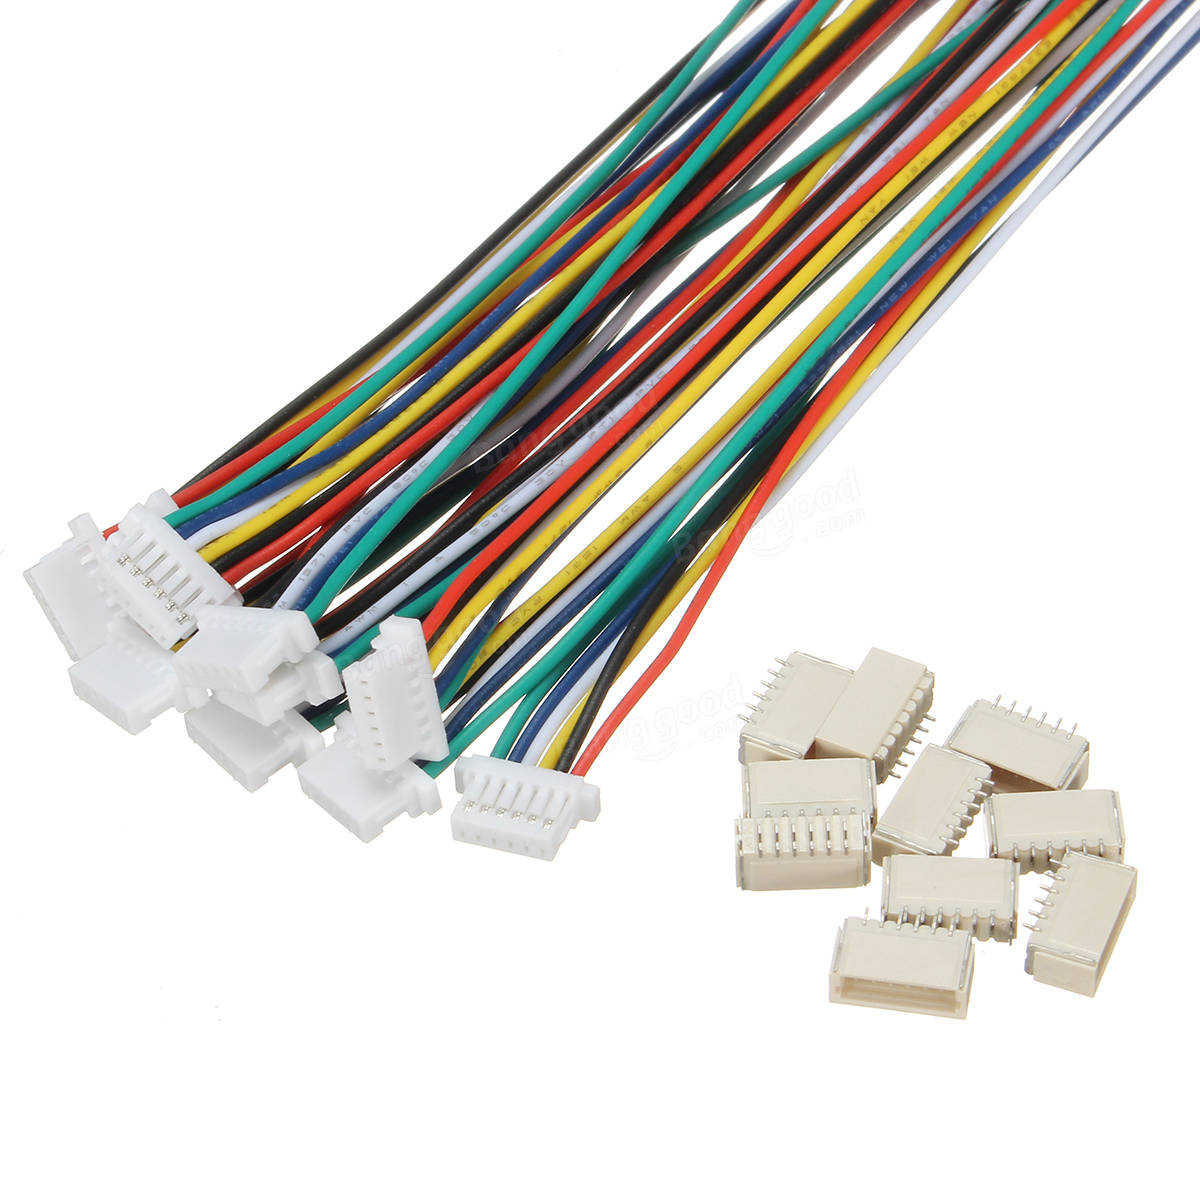 Excellway® 20Pcs Mini Micro JST 1.0mm SH 6-Pin Connector Plug With ...